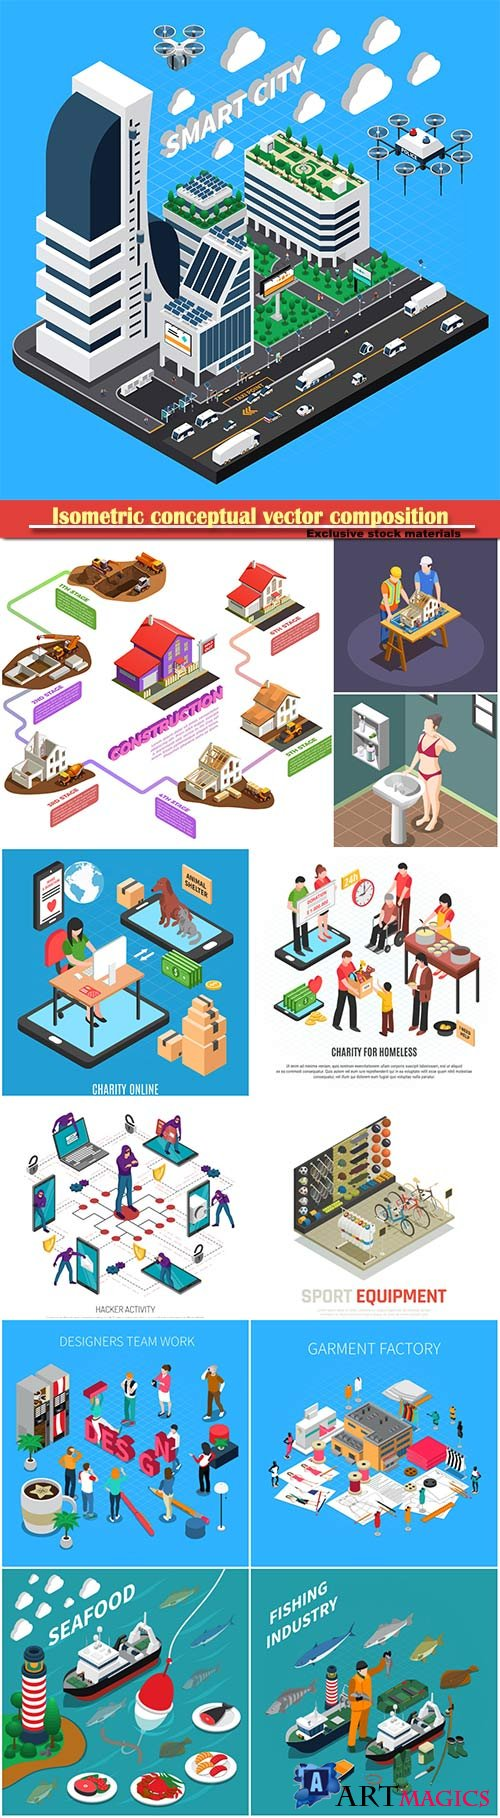 Isometric conceptual vector composition, infographics template # 26